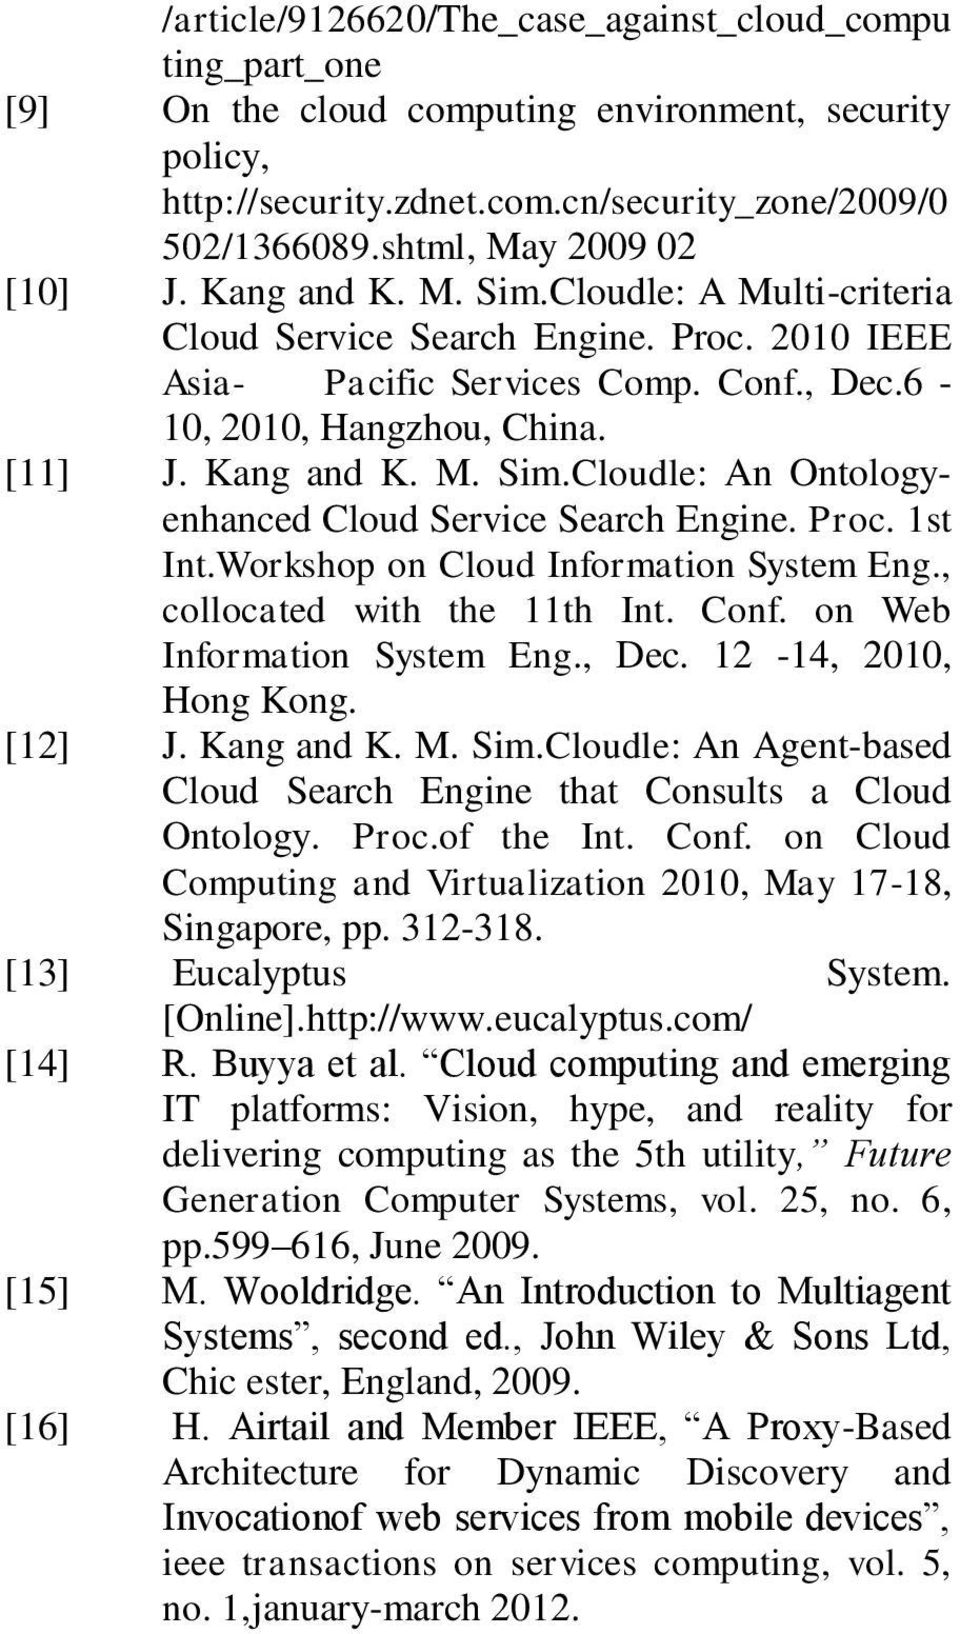 Kang and K. M. Sim.Cloudle: An Ontologyenhanced Cloud Service Search Engine. Proc. 1st Int.Workshop on Cloud Information System Eng., collocated with the 11th Int. Conf. on Web Information System Eng.